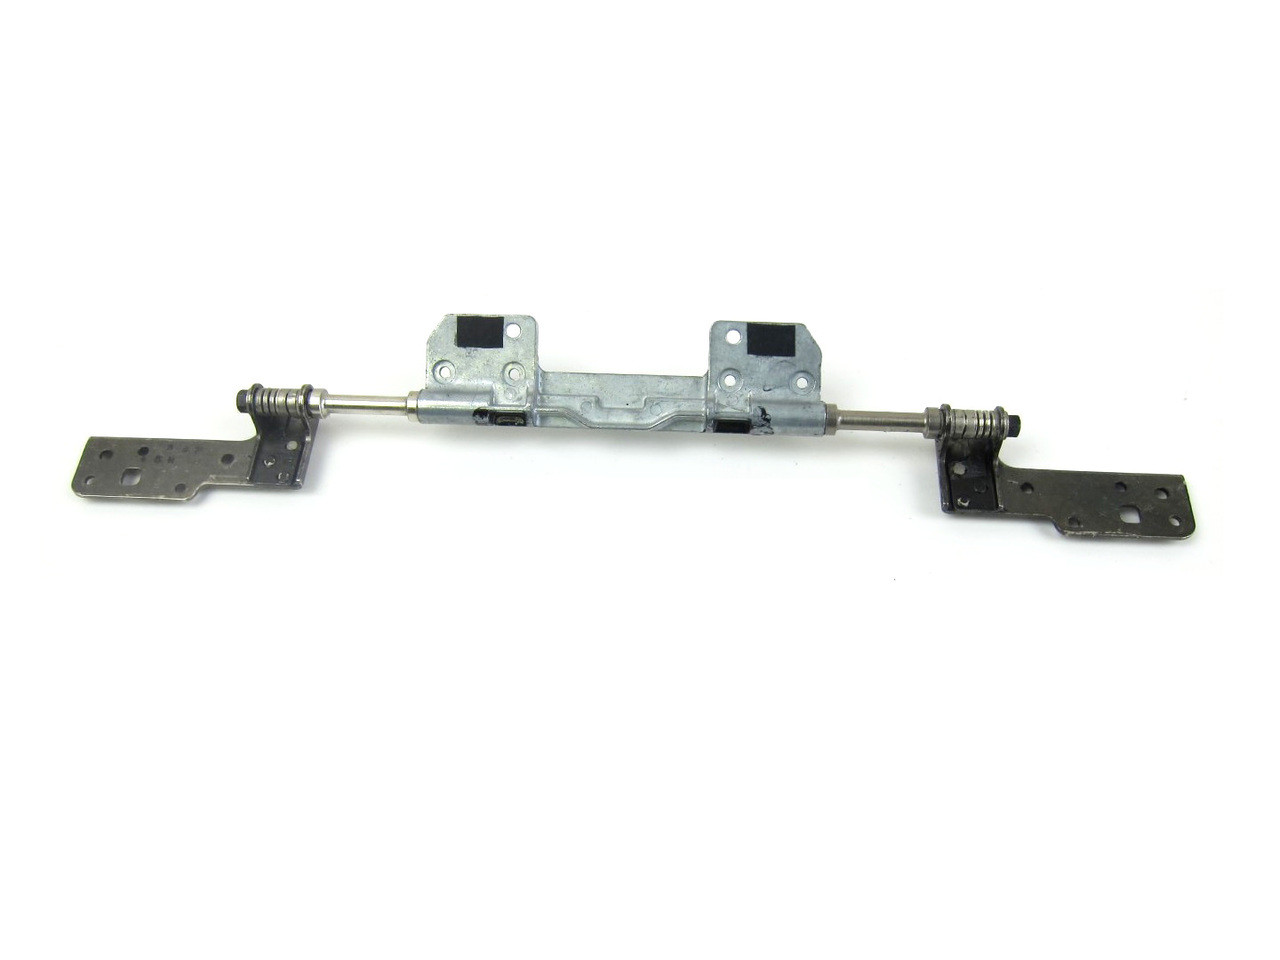 Alienware M15x Laptop LCD Hinges Assembly - R294G